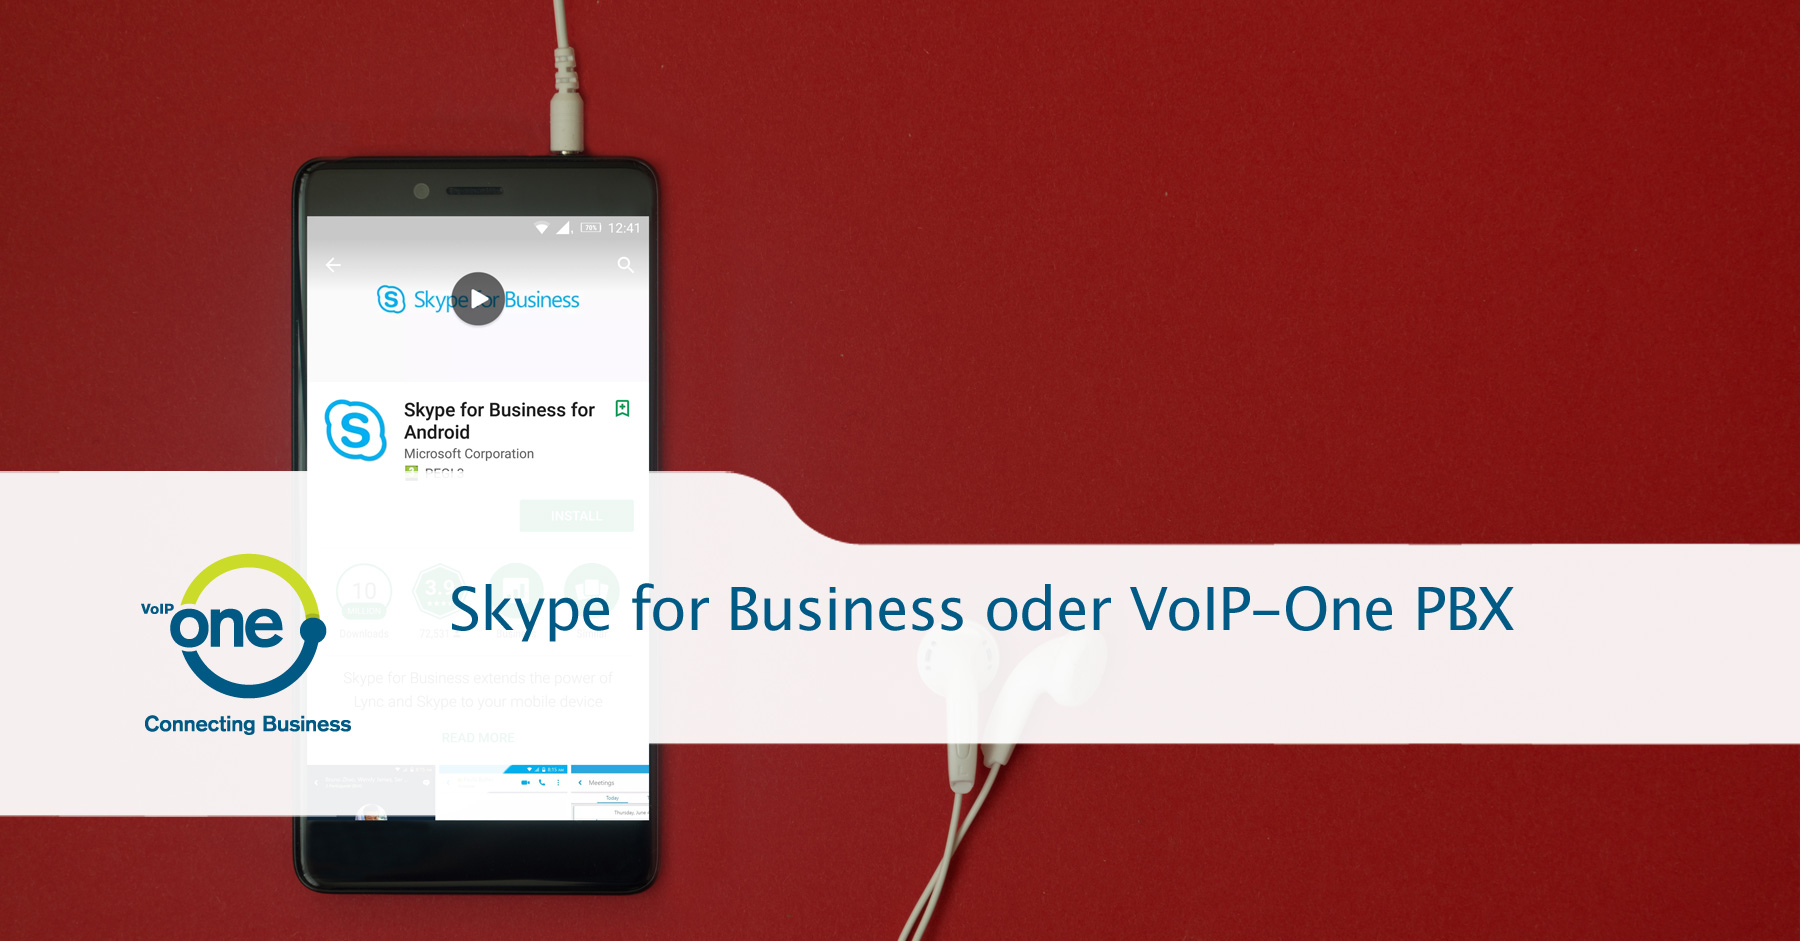 Skype for Business oder VoIP-One PBX